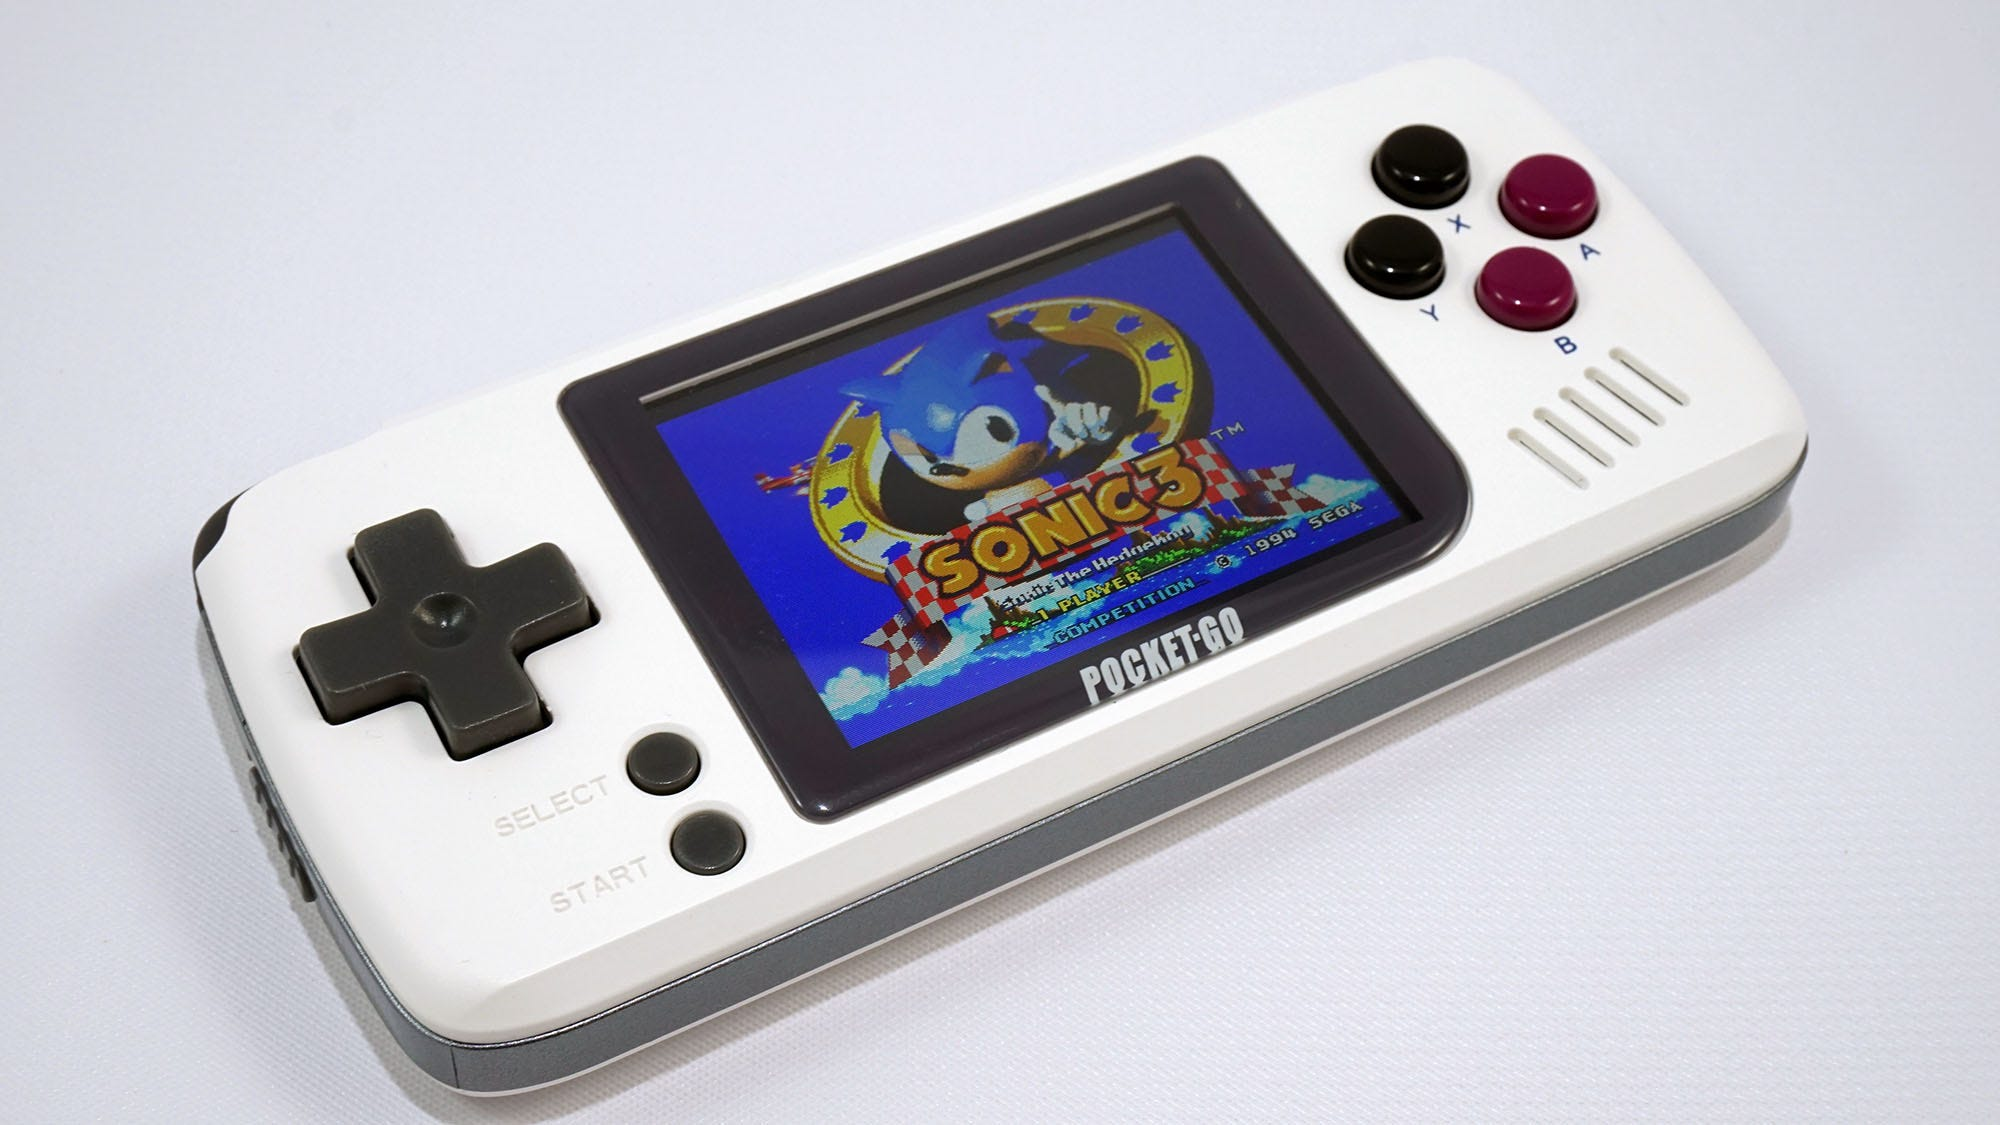 The PocketGo portable console with Sonic 3 on its screen.